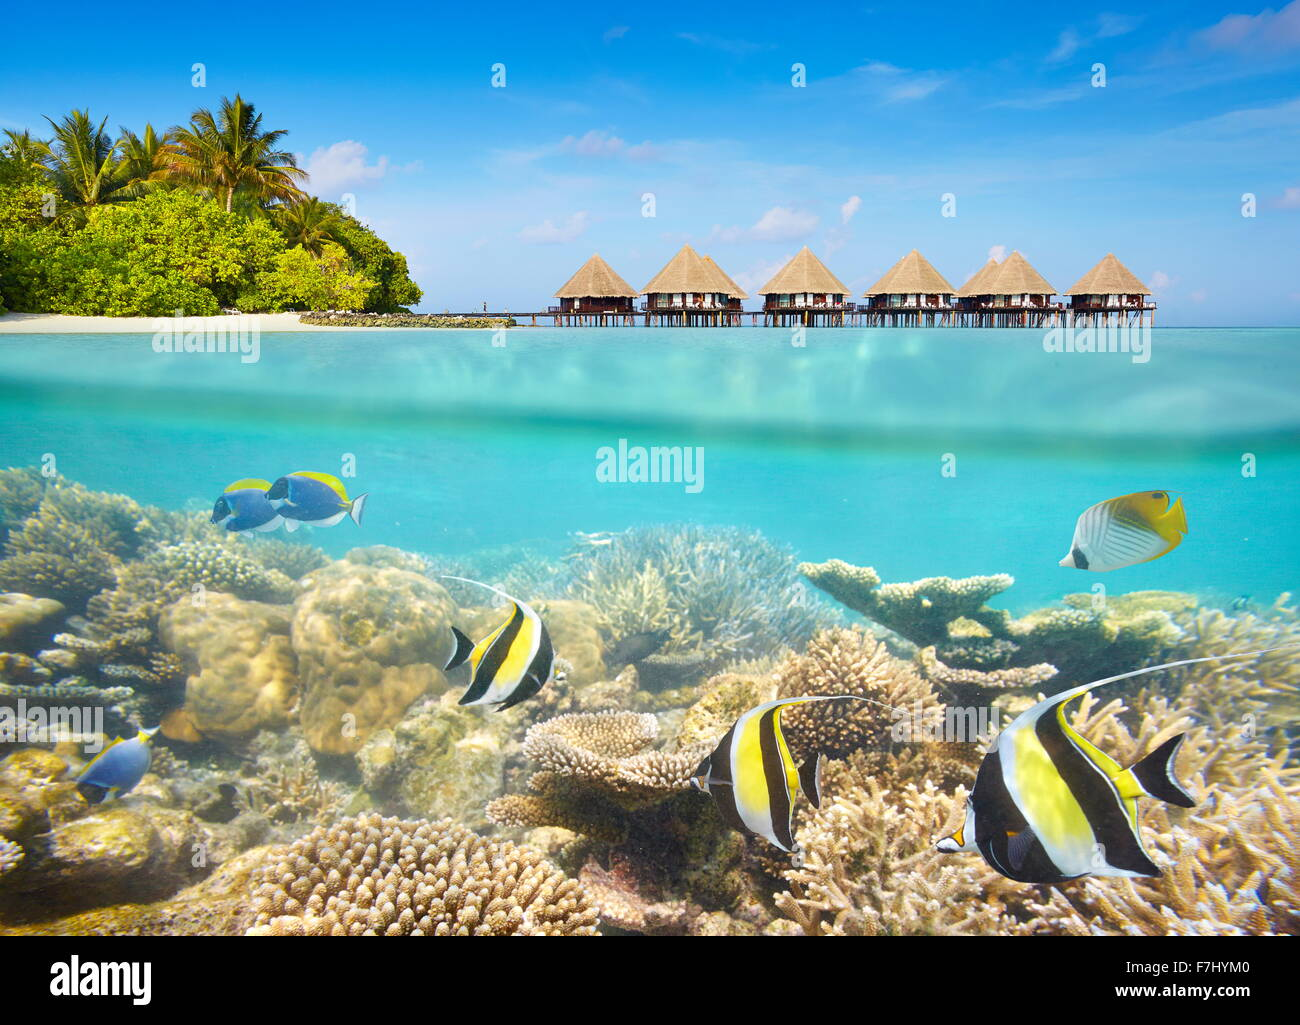 Tropical underwater scenery at Maledives Island - Stock Image